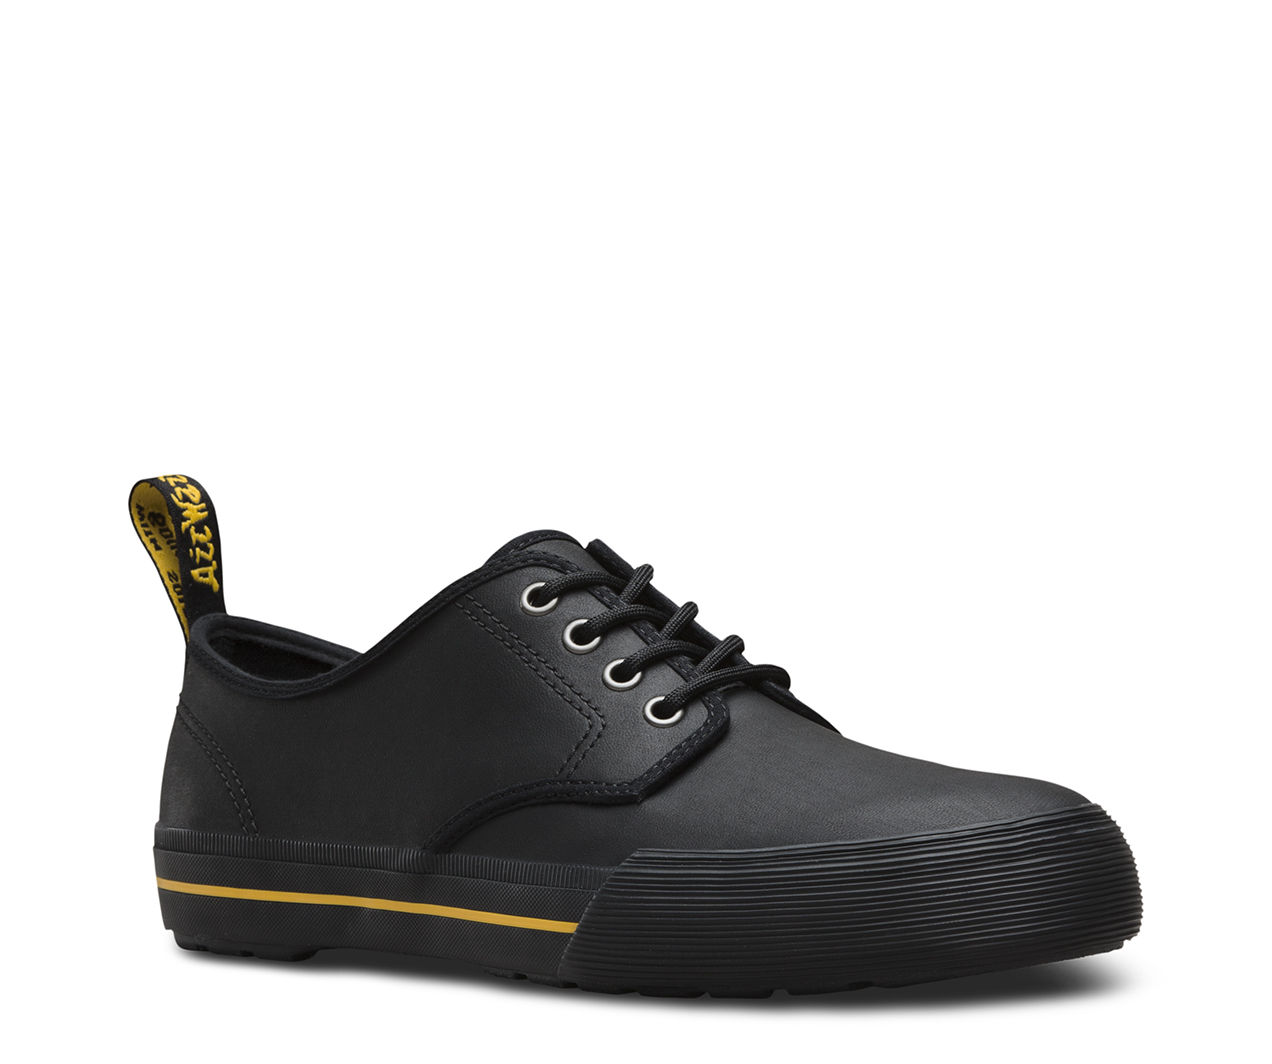 PRESSLER LEATHER | Casual Street Shoes & Boots | Official Dr Martens Store